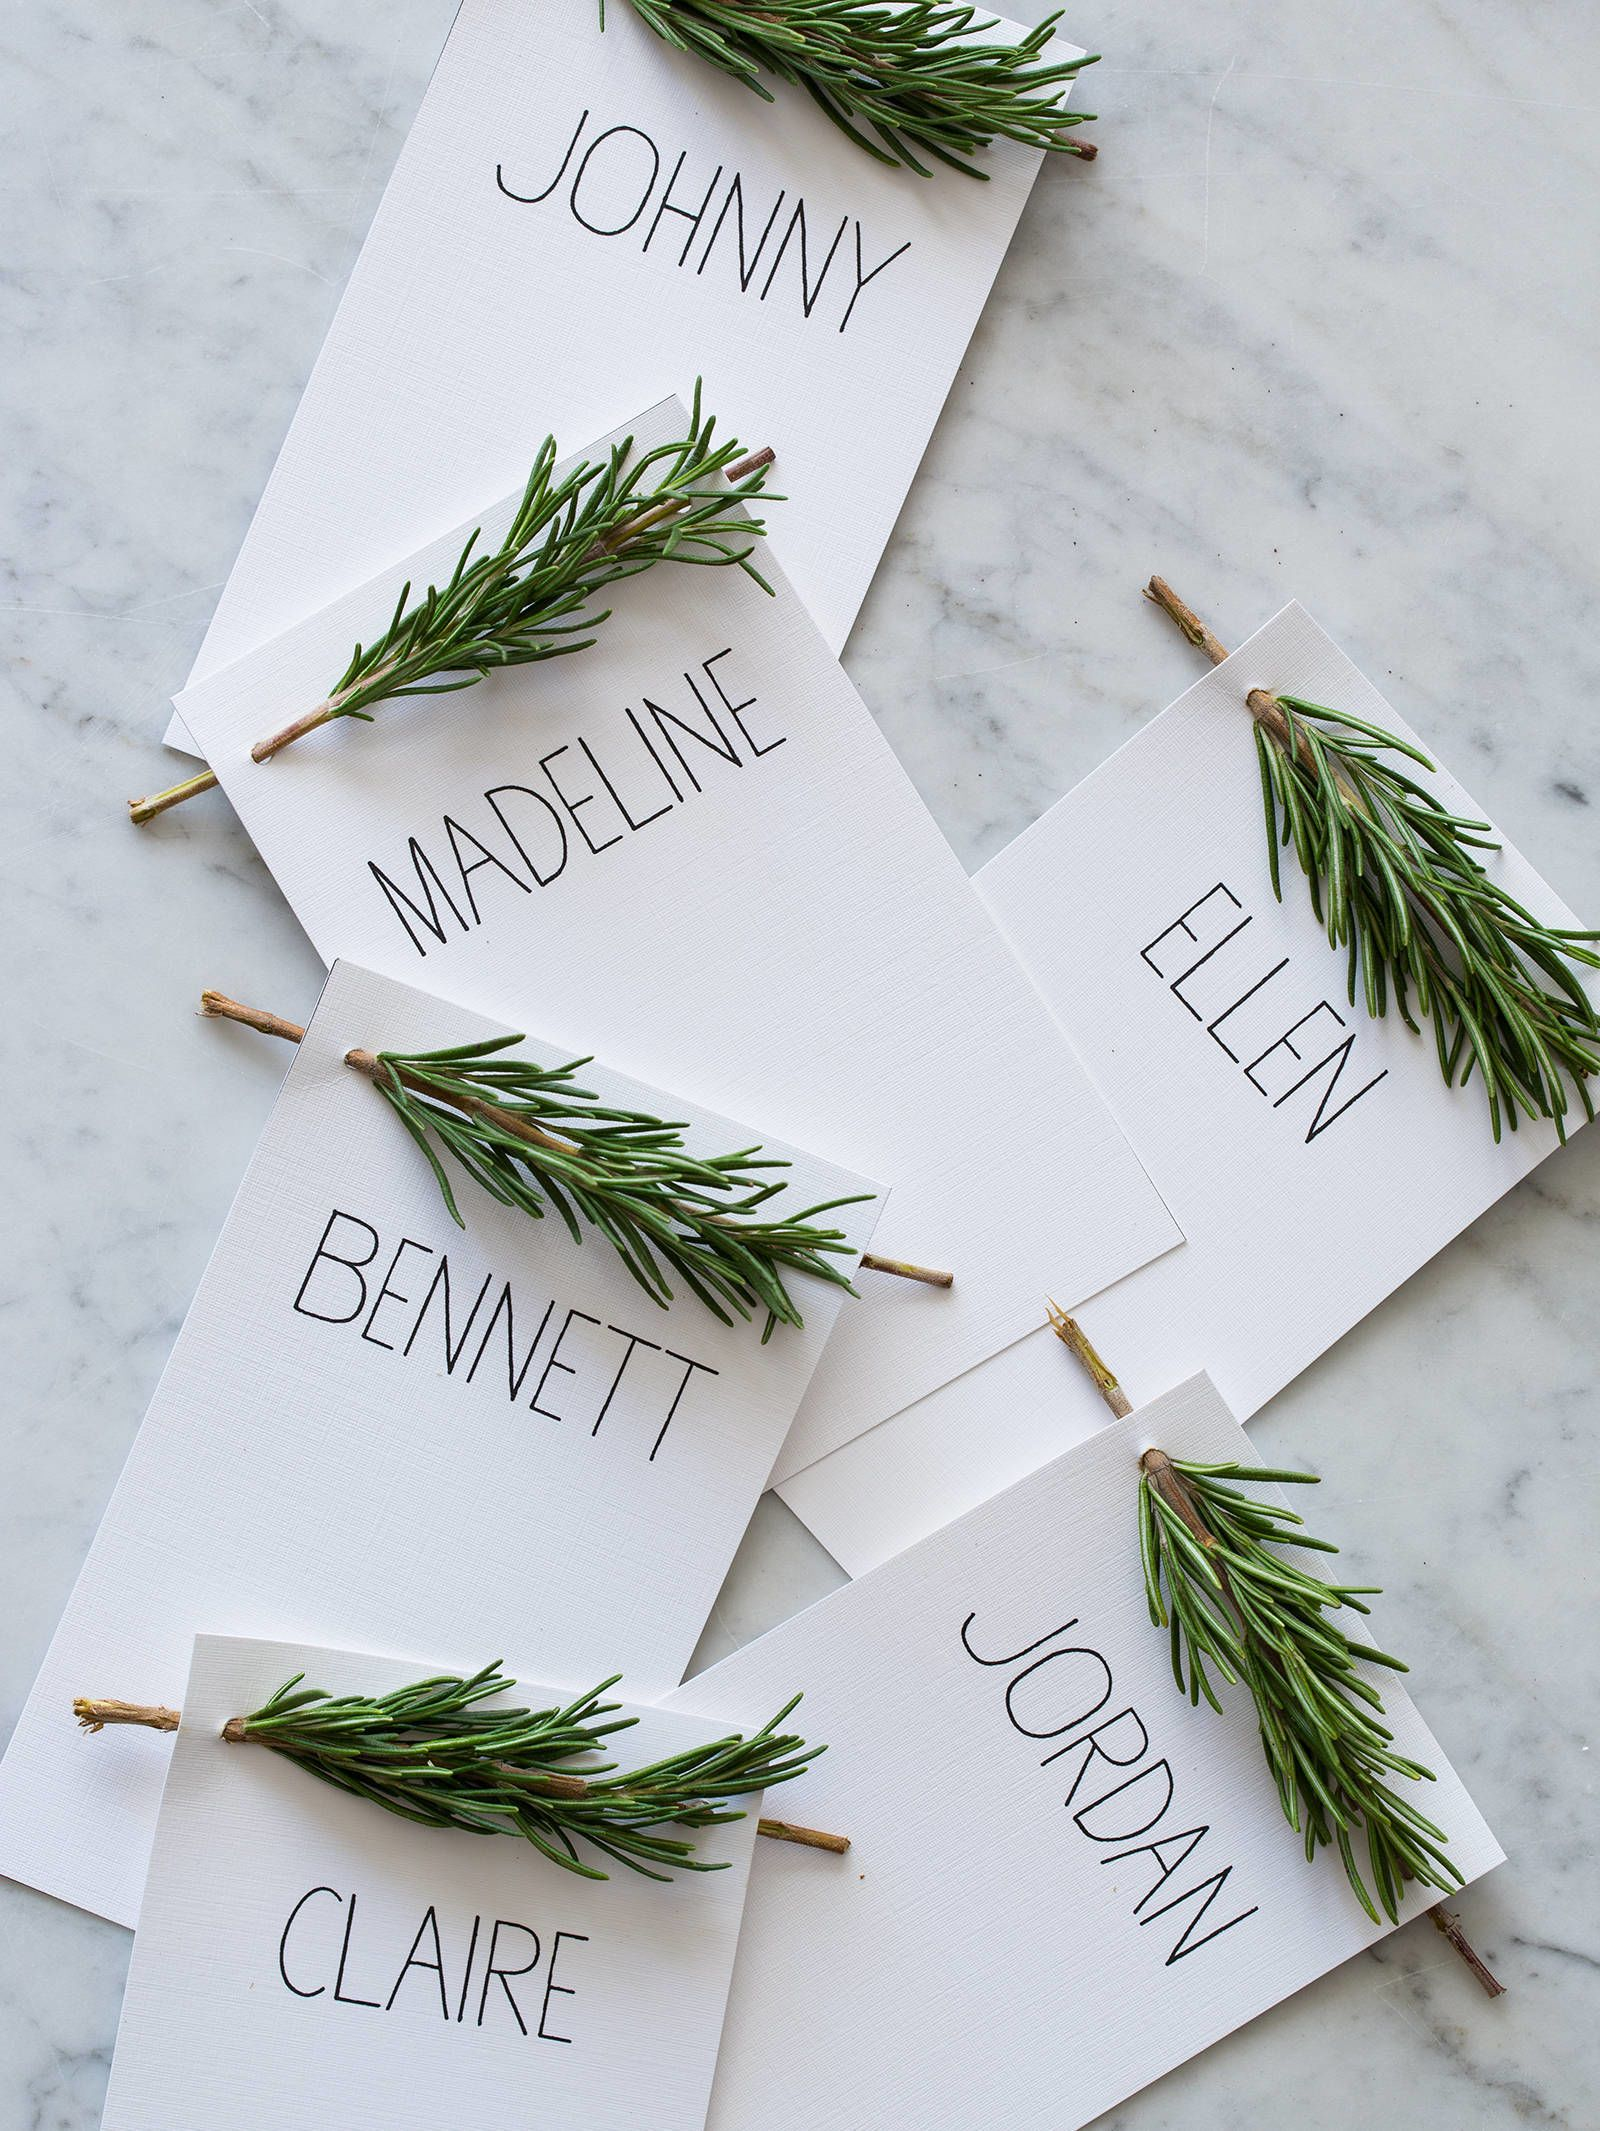 13 Creative DIY Place Cards For Your Turkey Day Table